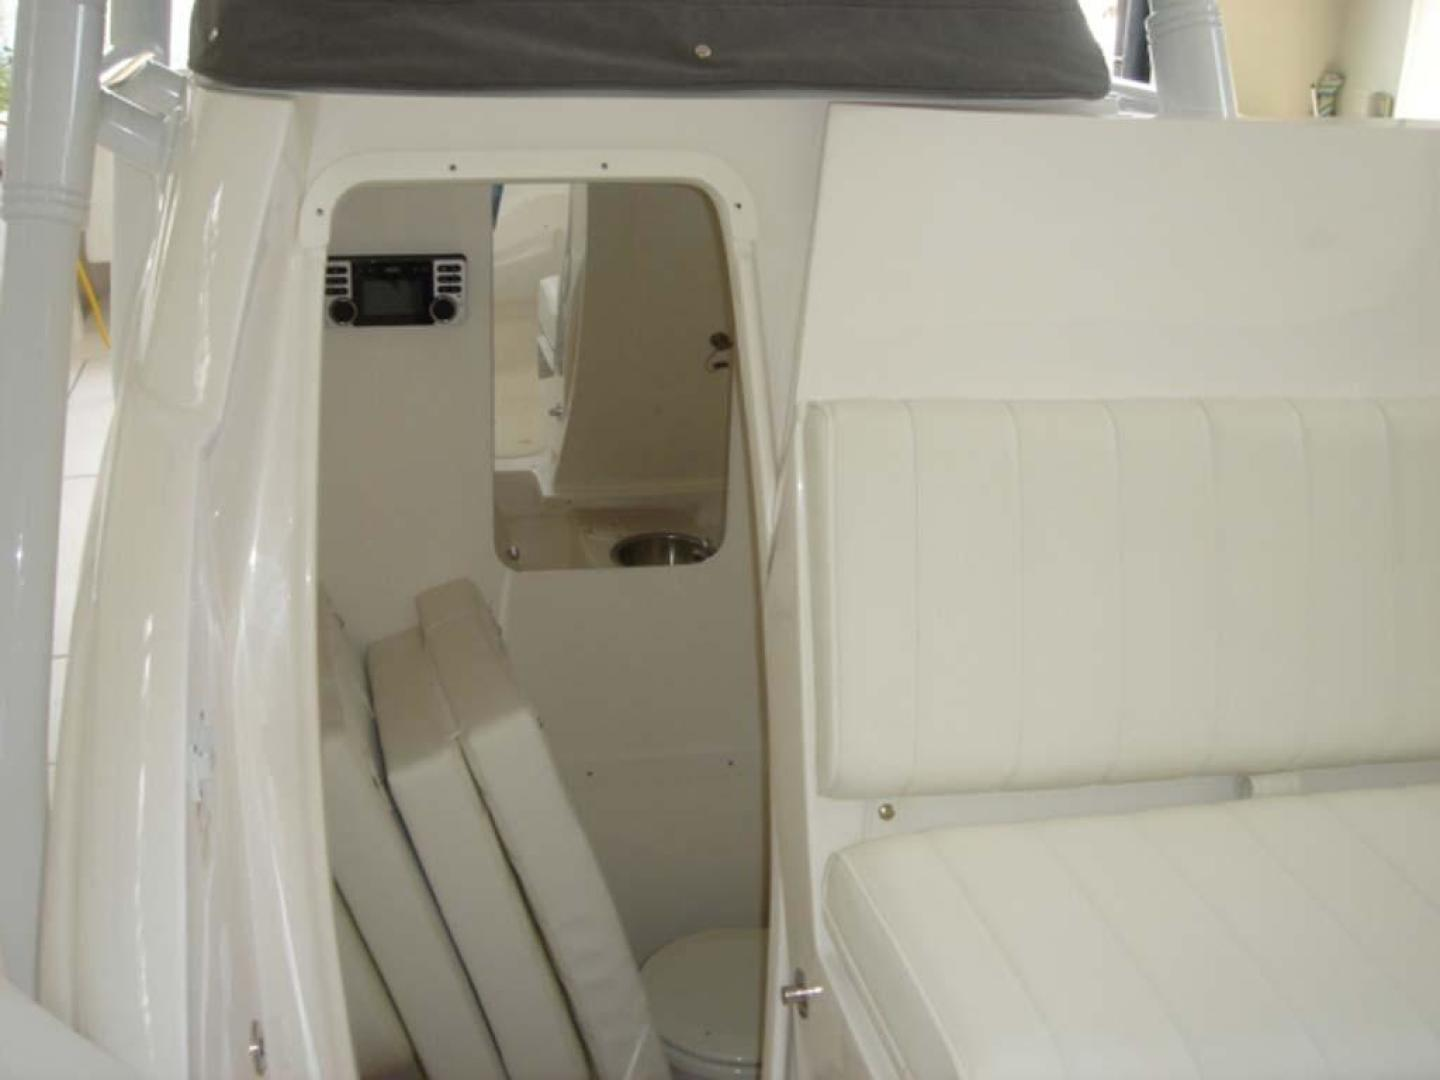 Intrepid-327 Center Console 2014-Deep Ship Palm Beach Gardens-Florida-United States-924013 | Thumbnail